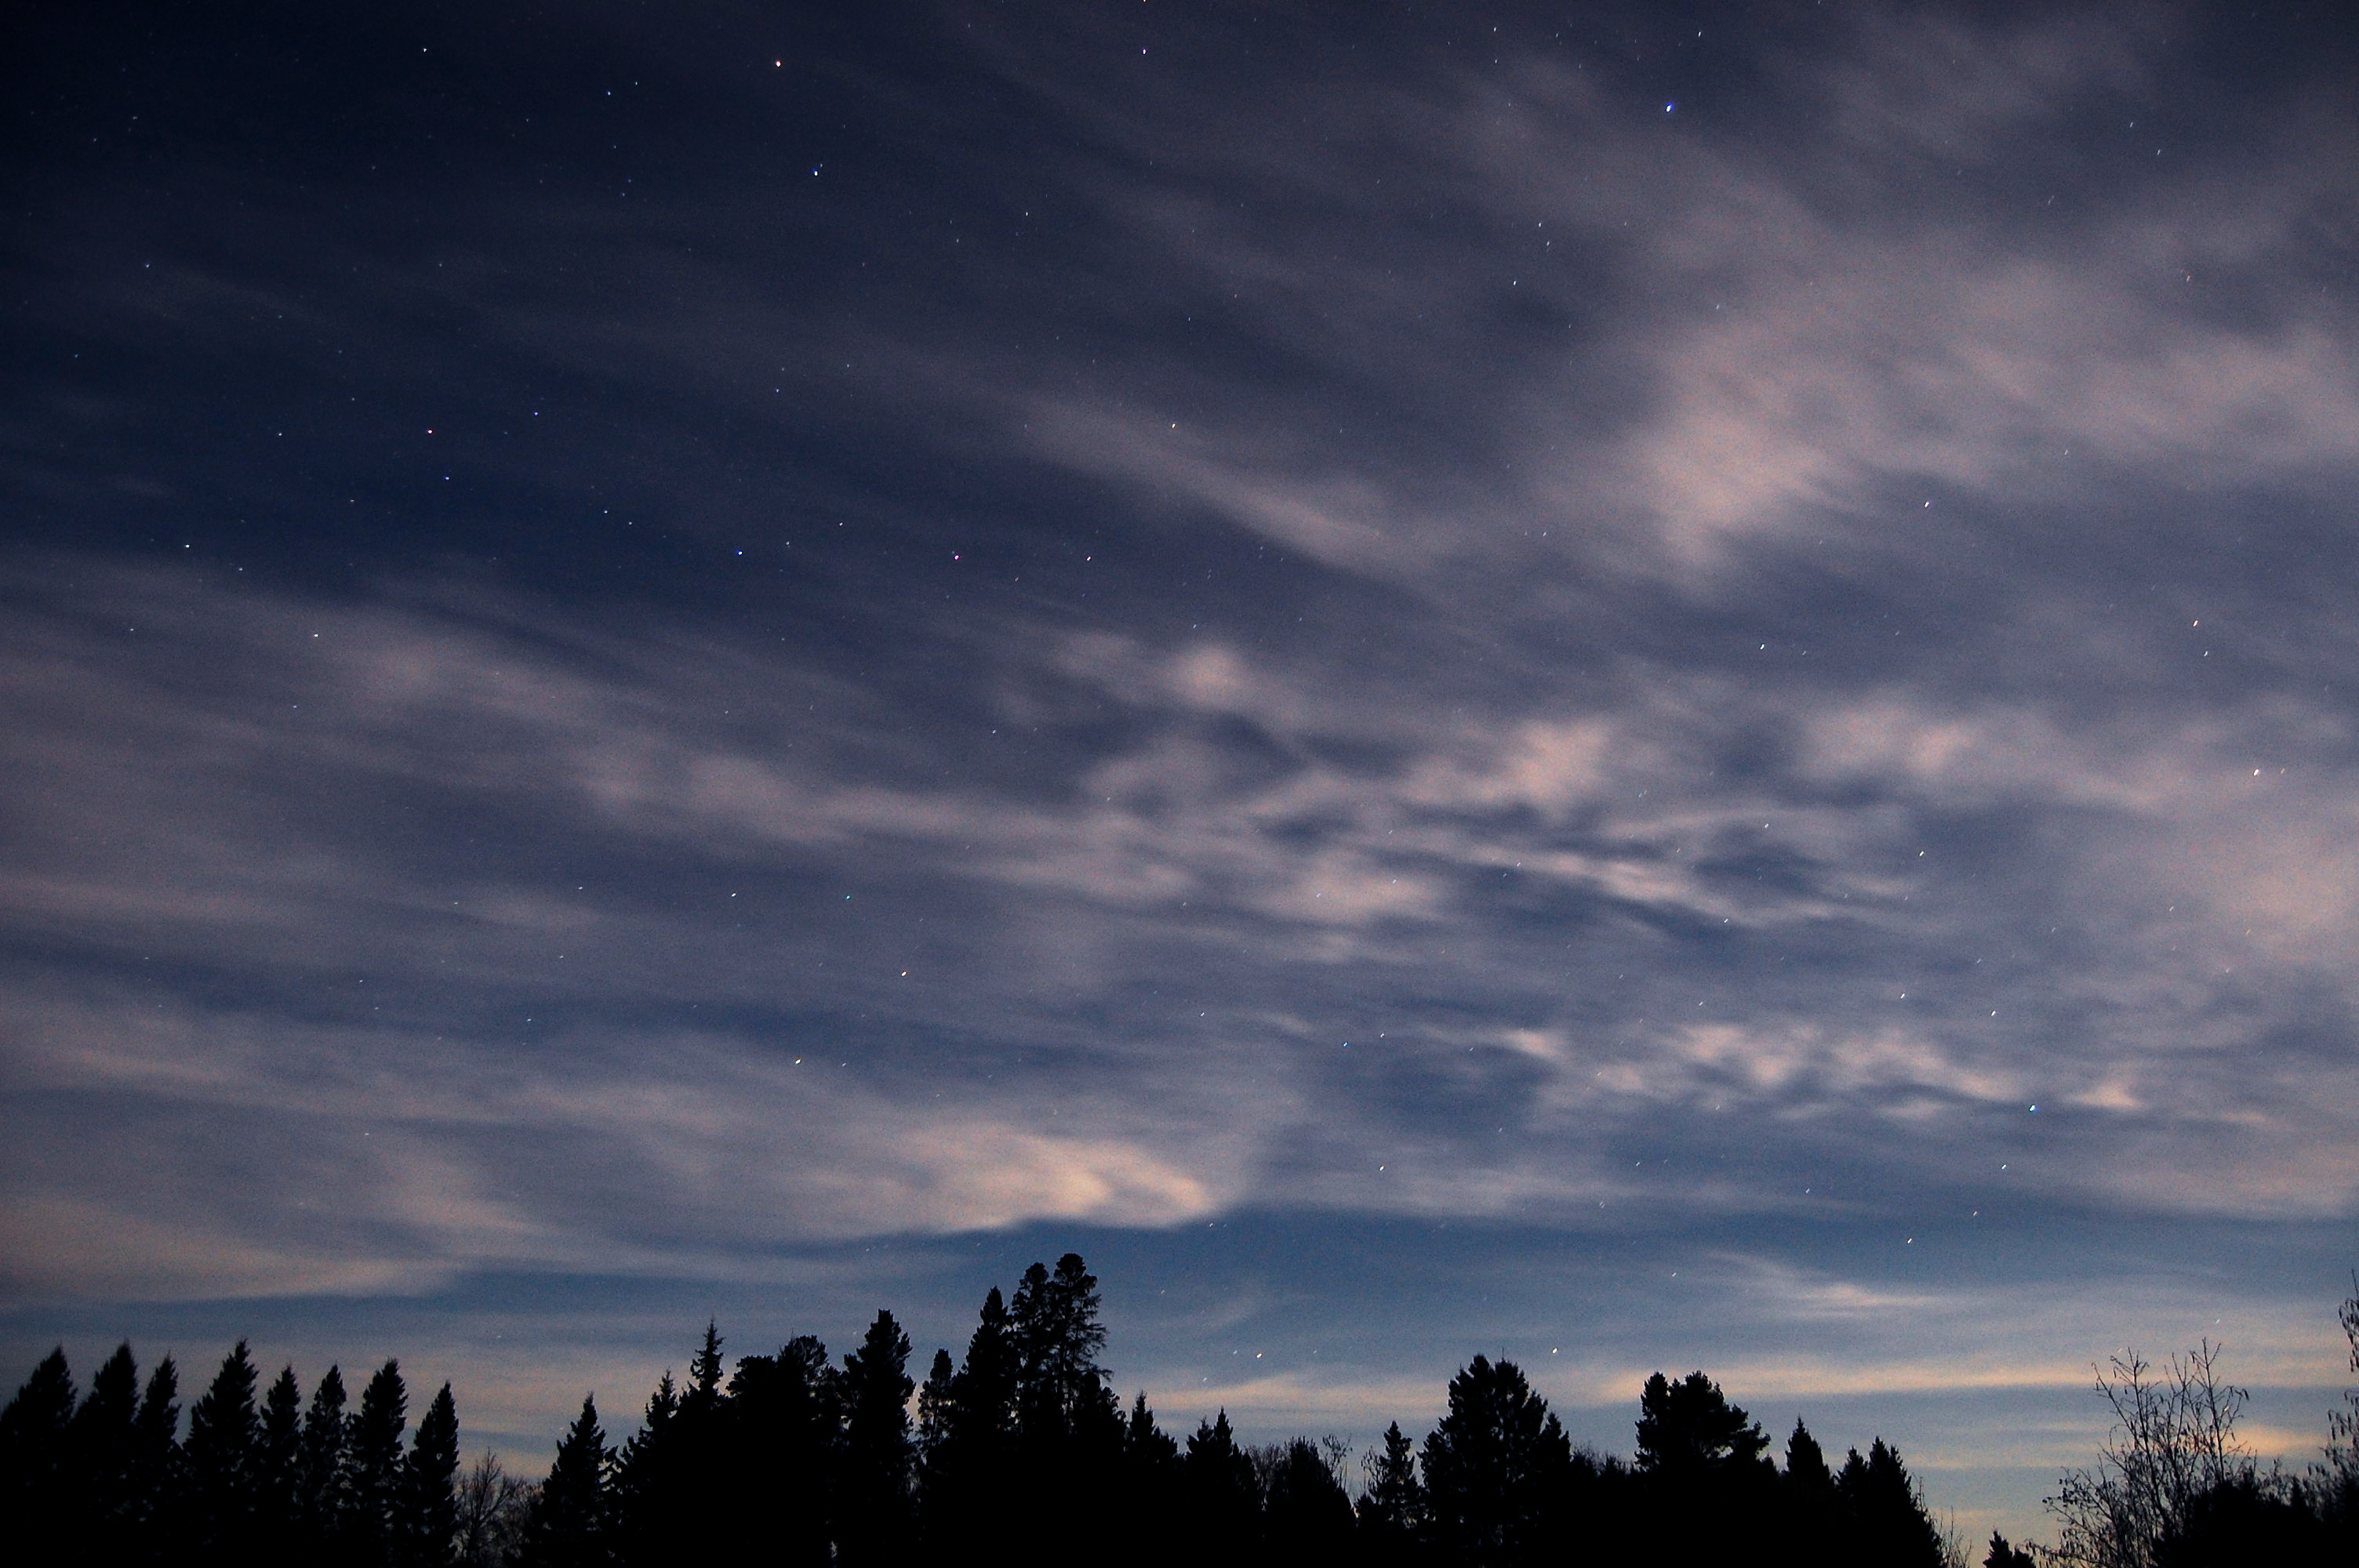 Clouds on a seemingly clear night.